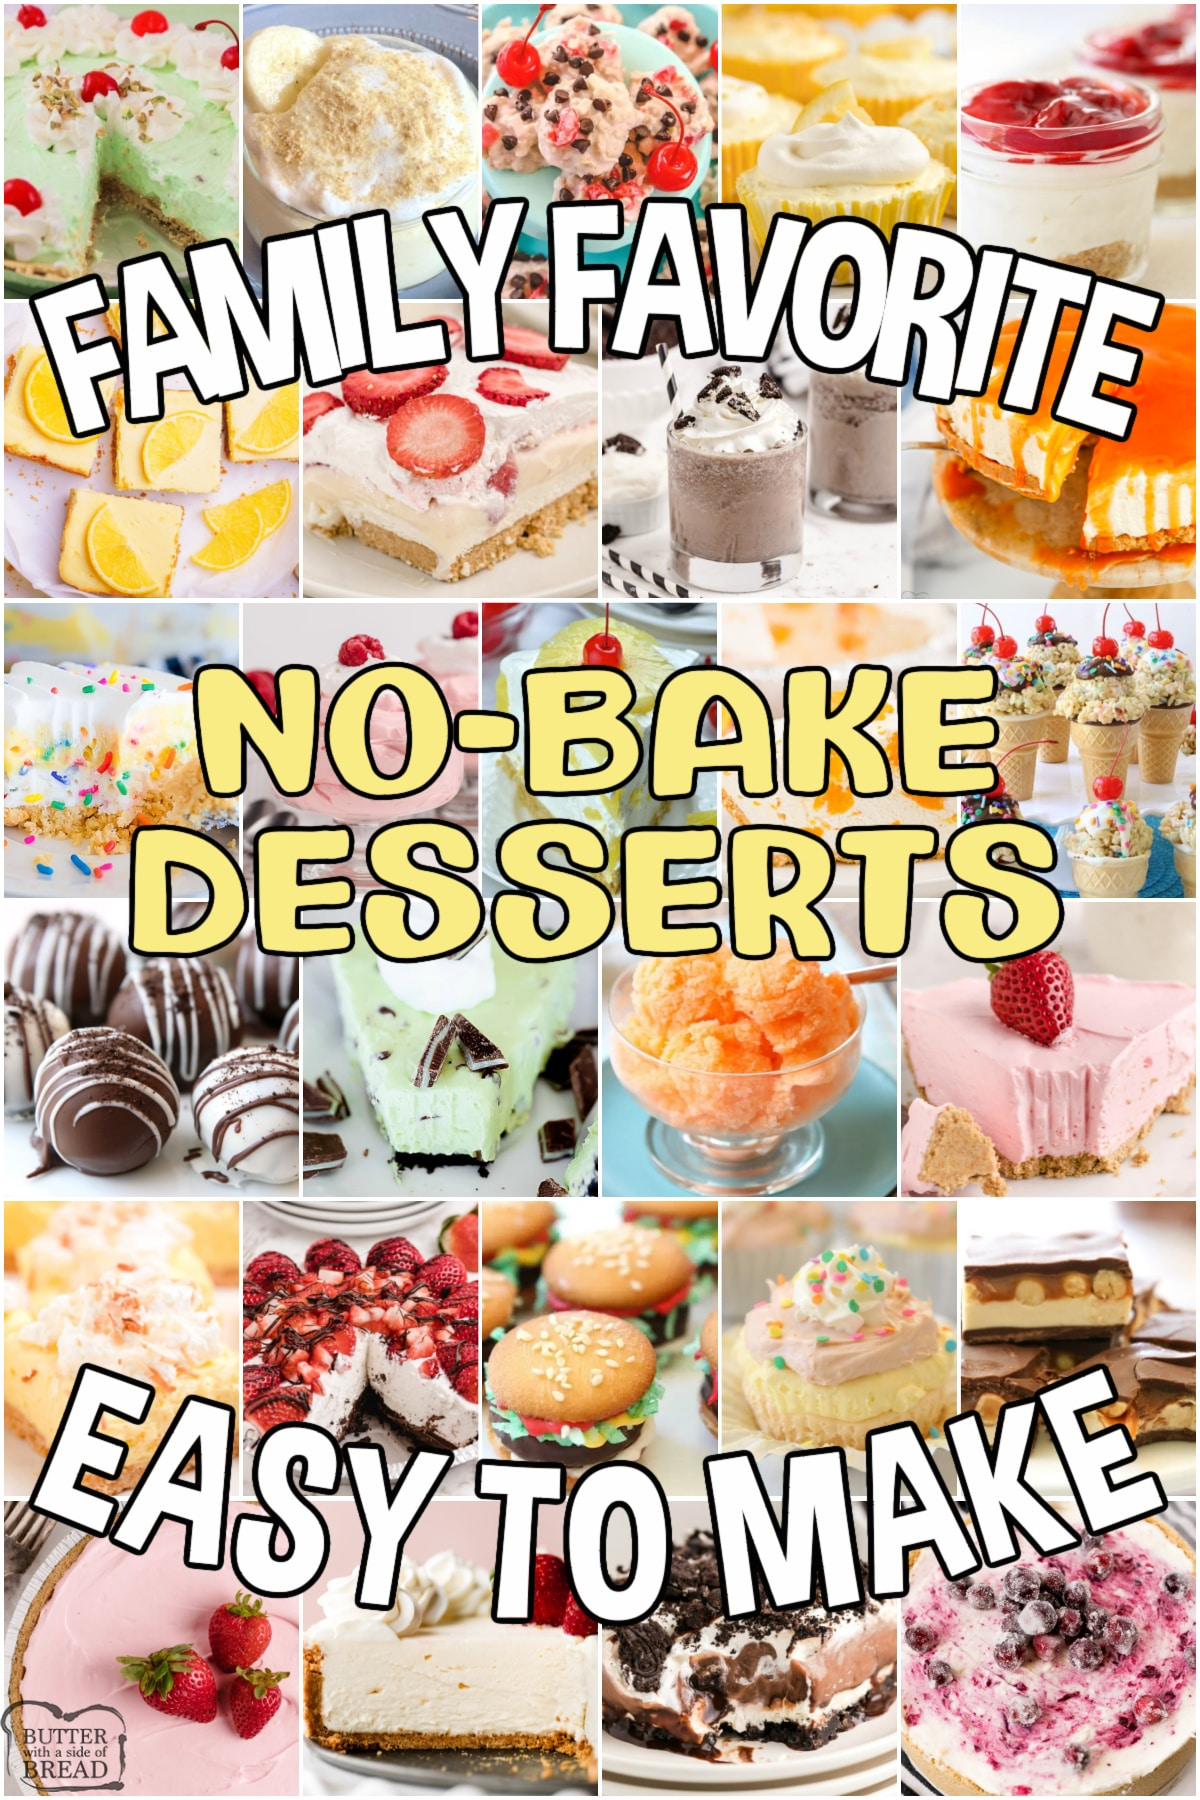 Truly the BEST collection of No-Bake Dessert recipes ever! No-bake cookies, pies, cakes, candy and more- all with few ingredients, simple directions and they taste amazing! Beat the heat with these family favorite no bake dessert recipes. #nobake #desserts #summer #easyrecipes from BUTTER WITH A SIDE OF BREAD